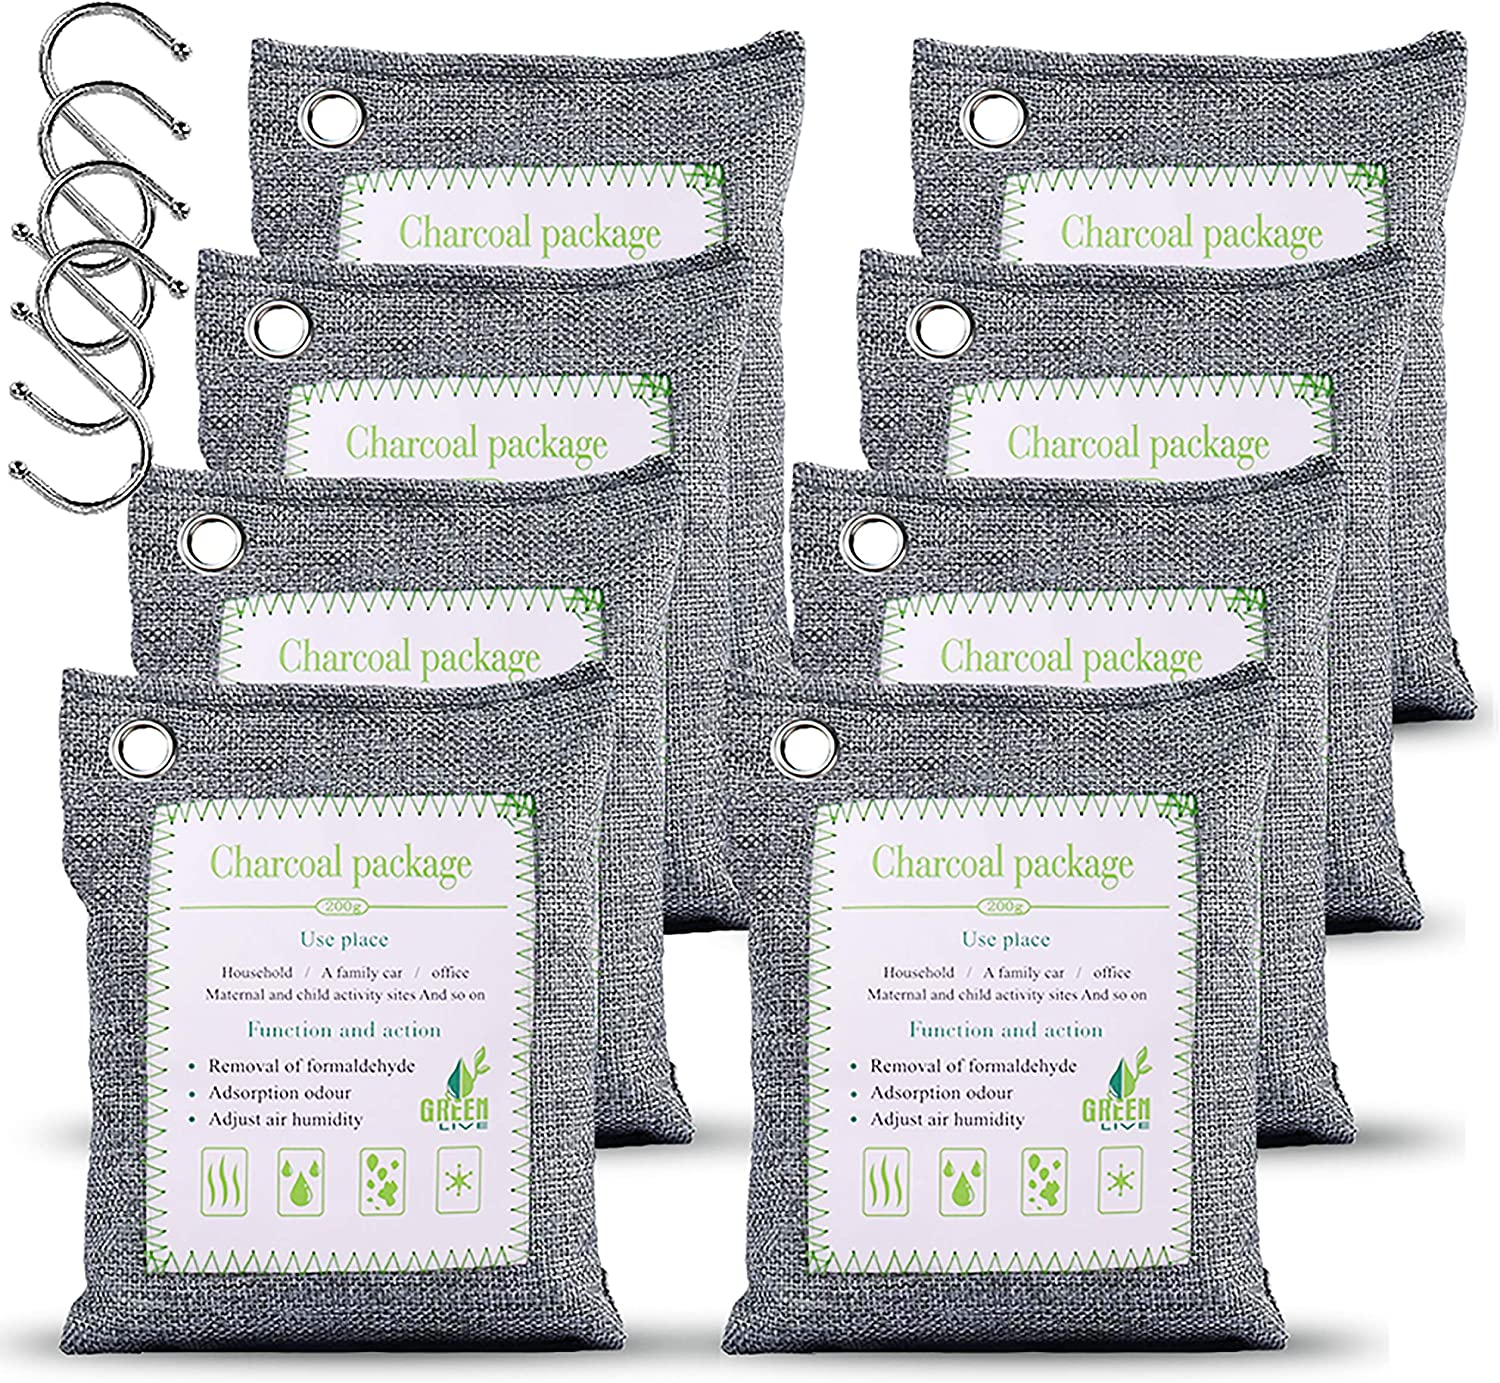 WGCC Activated Bamboo Charcoal Air Purifying Bags, [8 Pack 200g Each] Natural Fresh Bags Odor eliminators Absorber - Kid&Pet-friendly Air Fresheners for Home, Car, Shoes, Closet, Pets and Basement